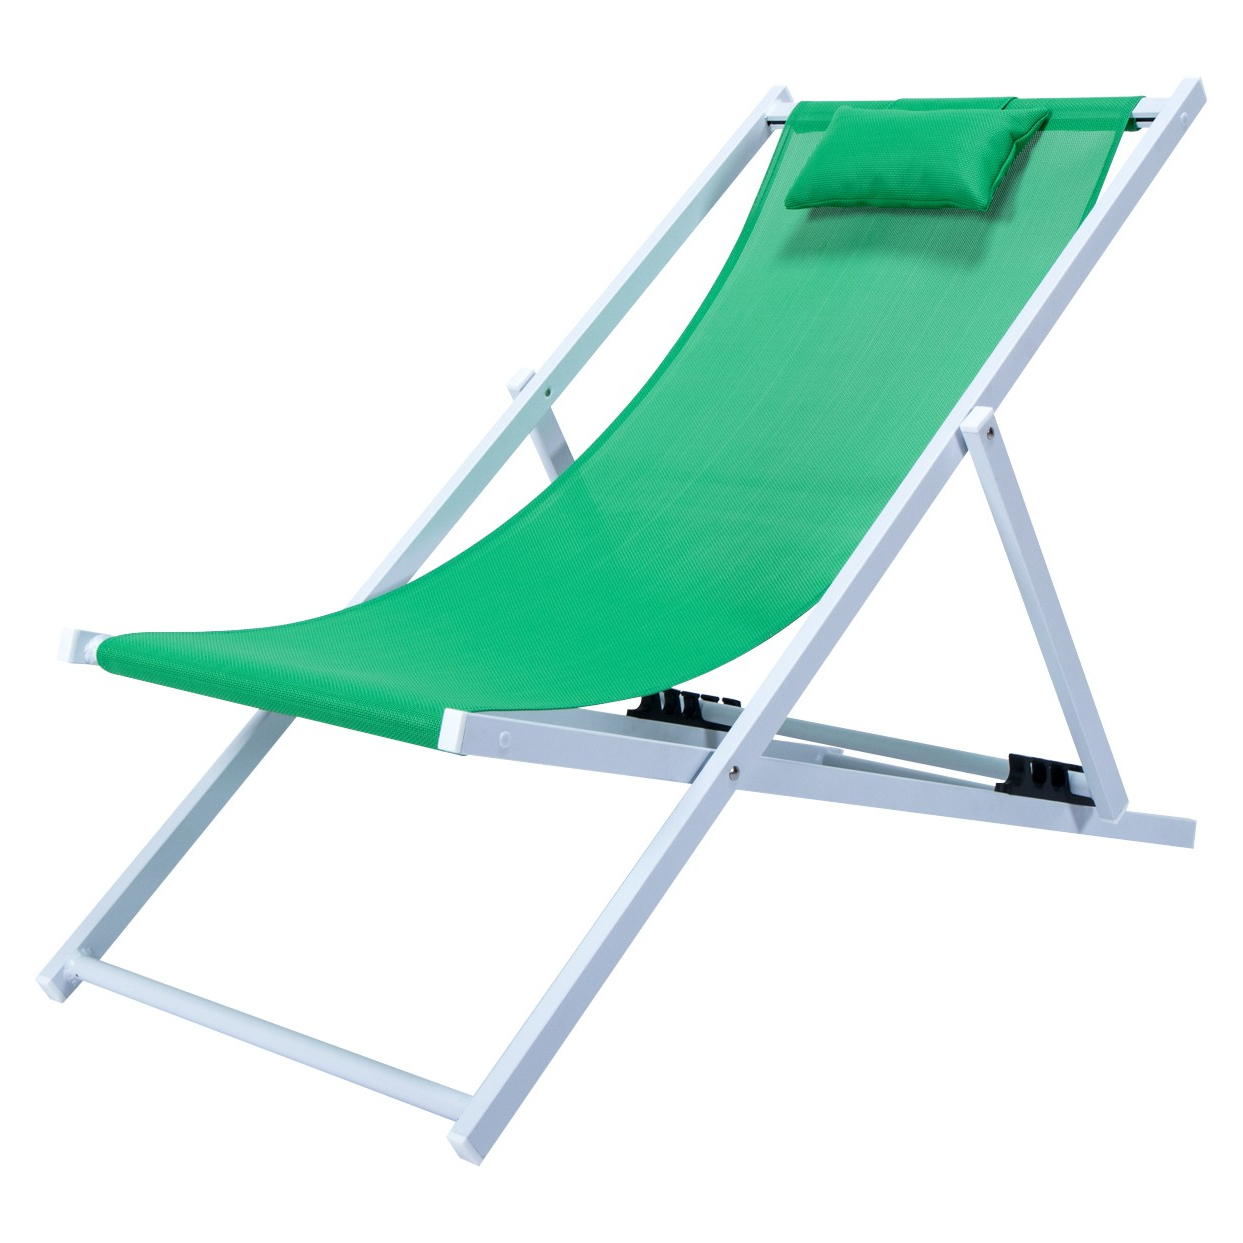 Sunset Sling Beach Chair With Headrest In Green Pertaining To Most Up To Date Sunset Patio Sling Folding Chairs With Headrest (View 8 of 25)